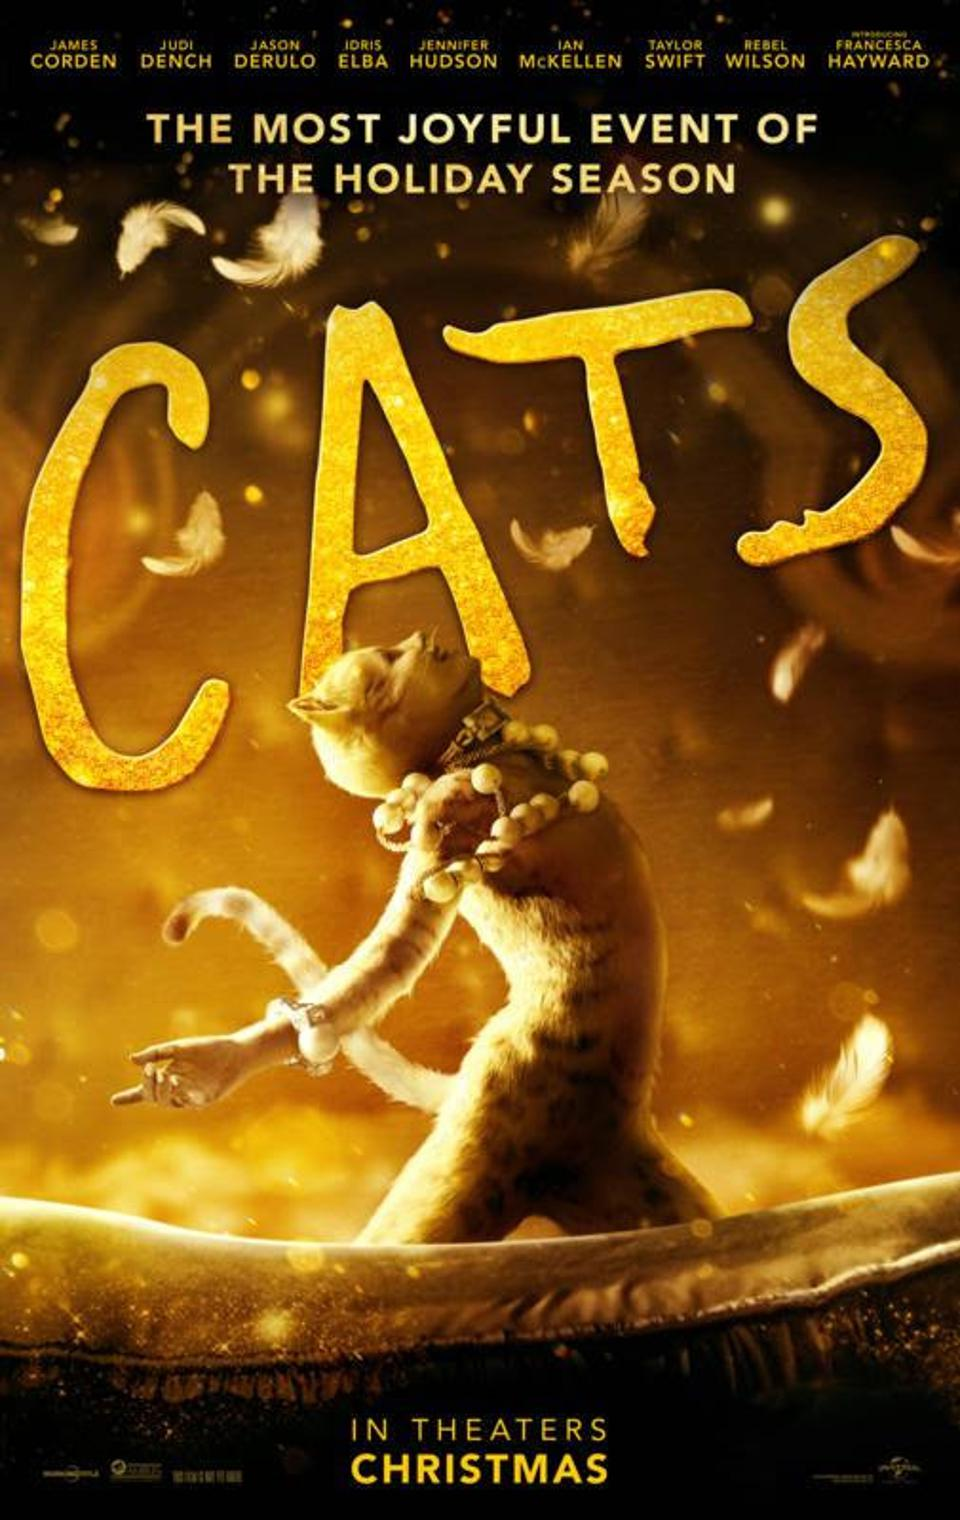 'Cats' poster